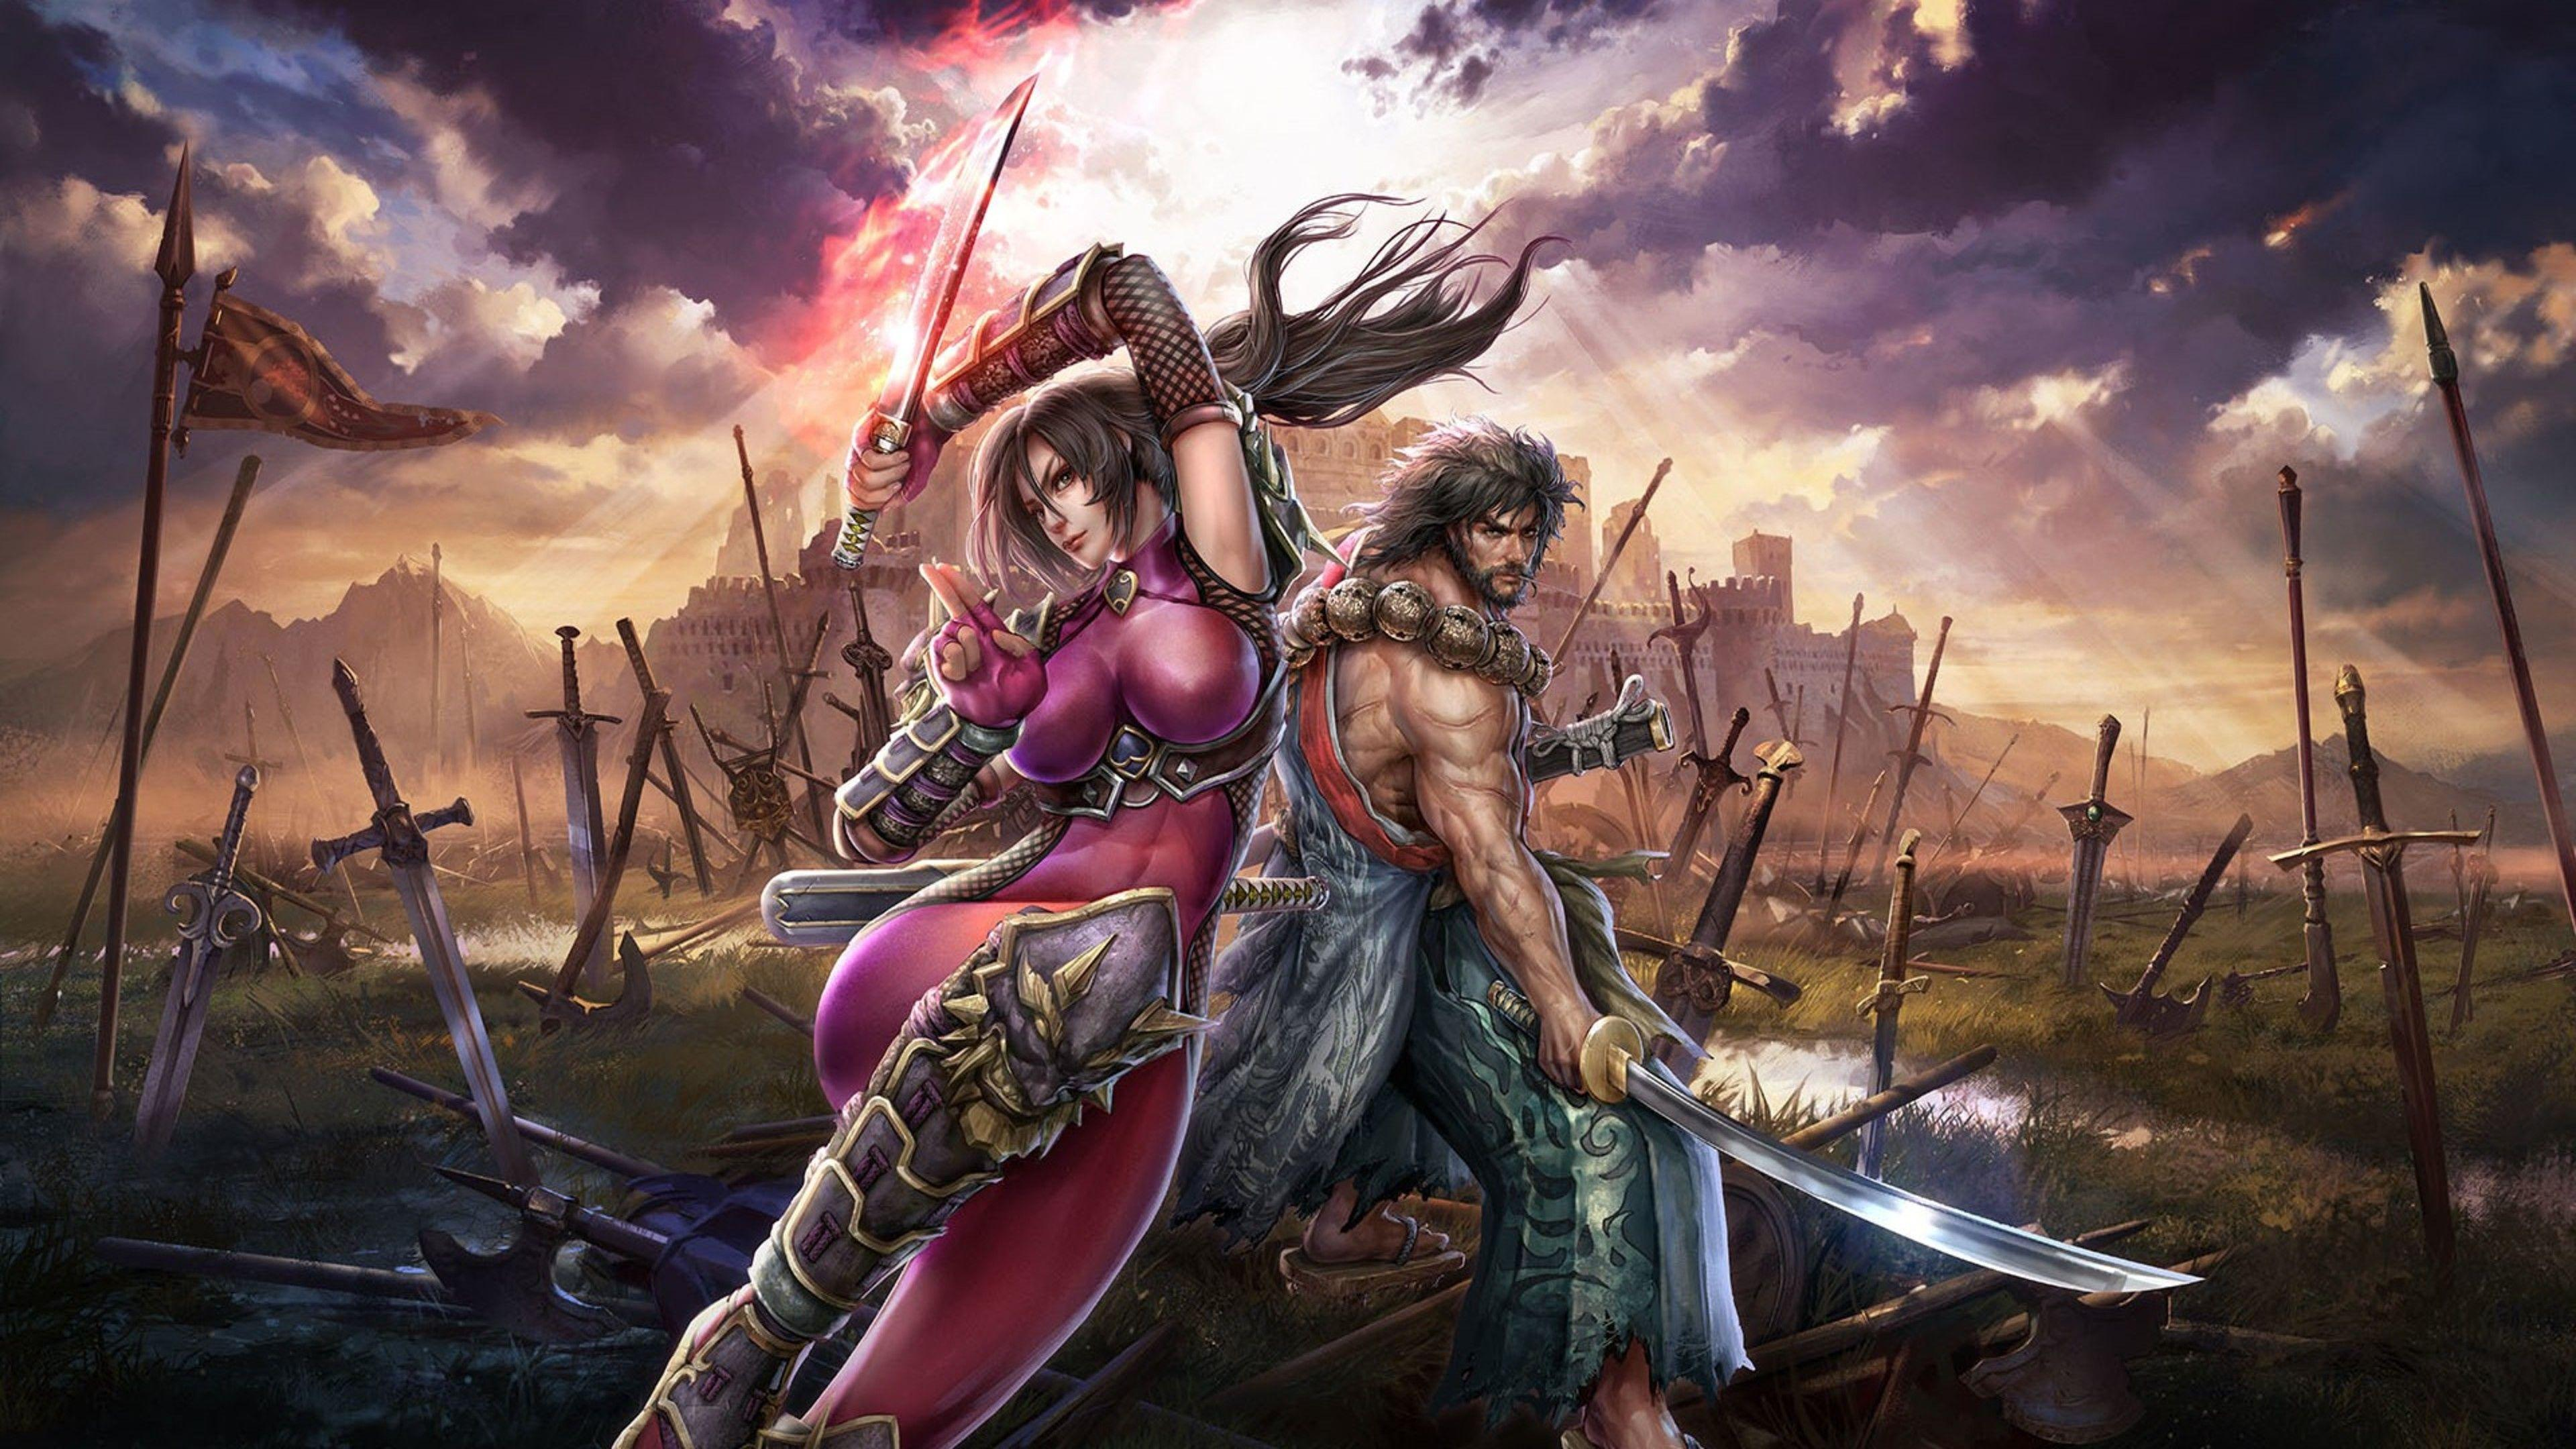 Soul Calibur Lost Swords Game, HD Games, 4k Wallpapers, Image